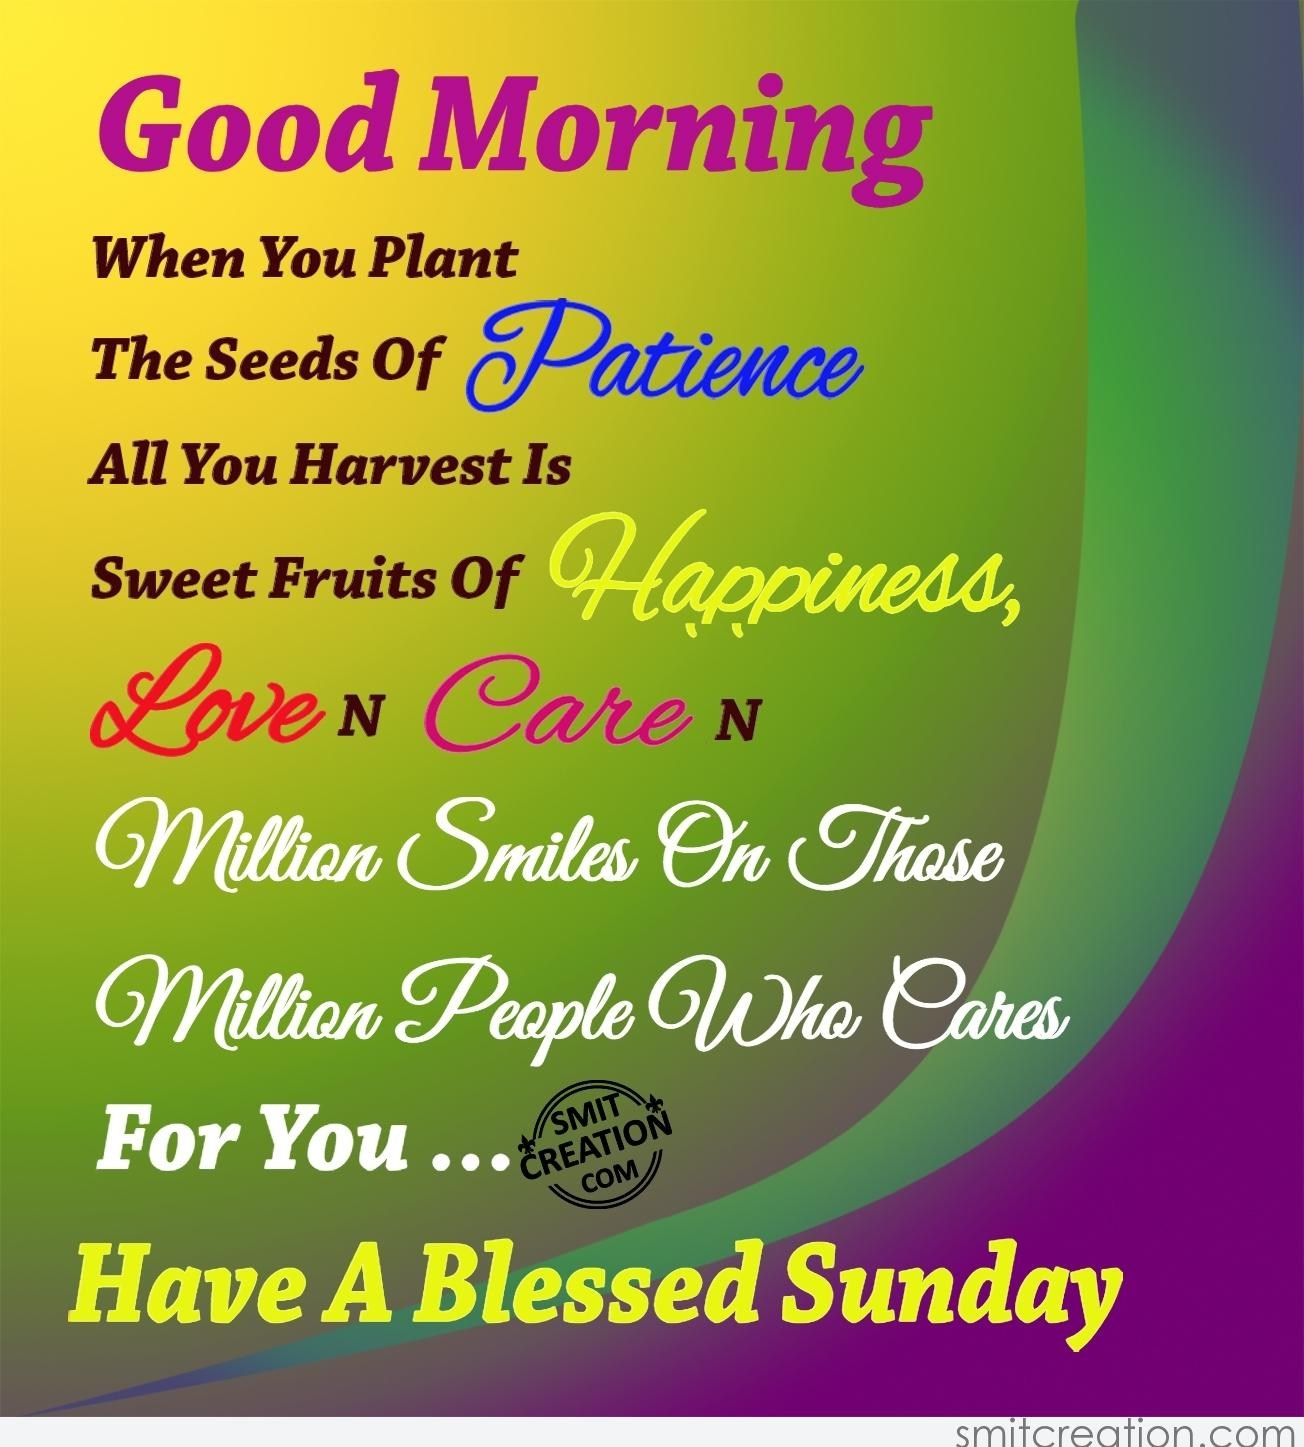 Sunday pictures and graphics smitcreation page 10 download image good morning m4hsunfo